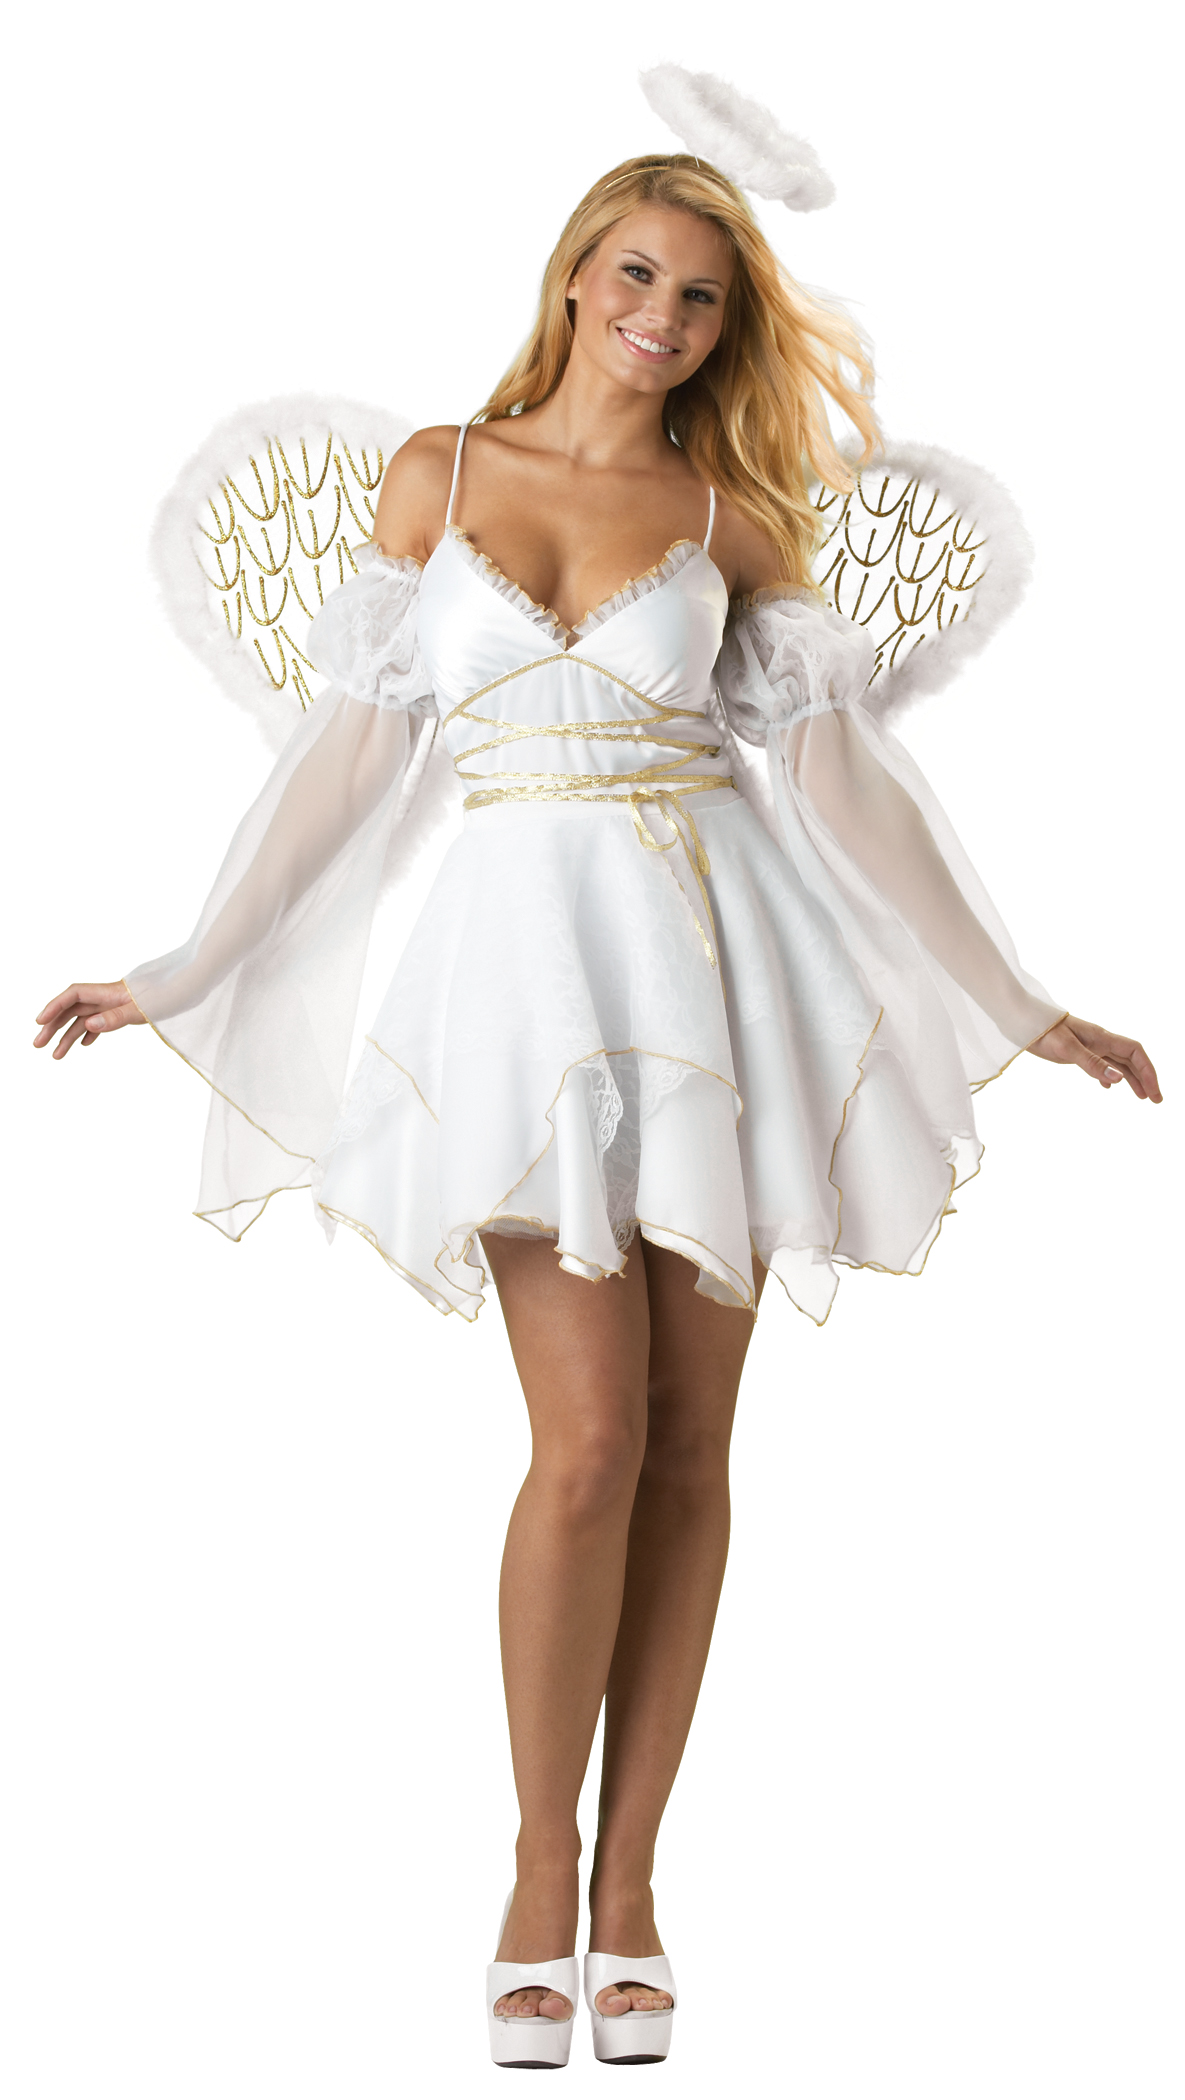 costume retailer kick starts halloween 2009 with mesmerizing angel halloween costumes. Black Bedroom Furniture Sets. Home Design Ideas